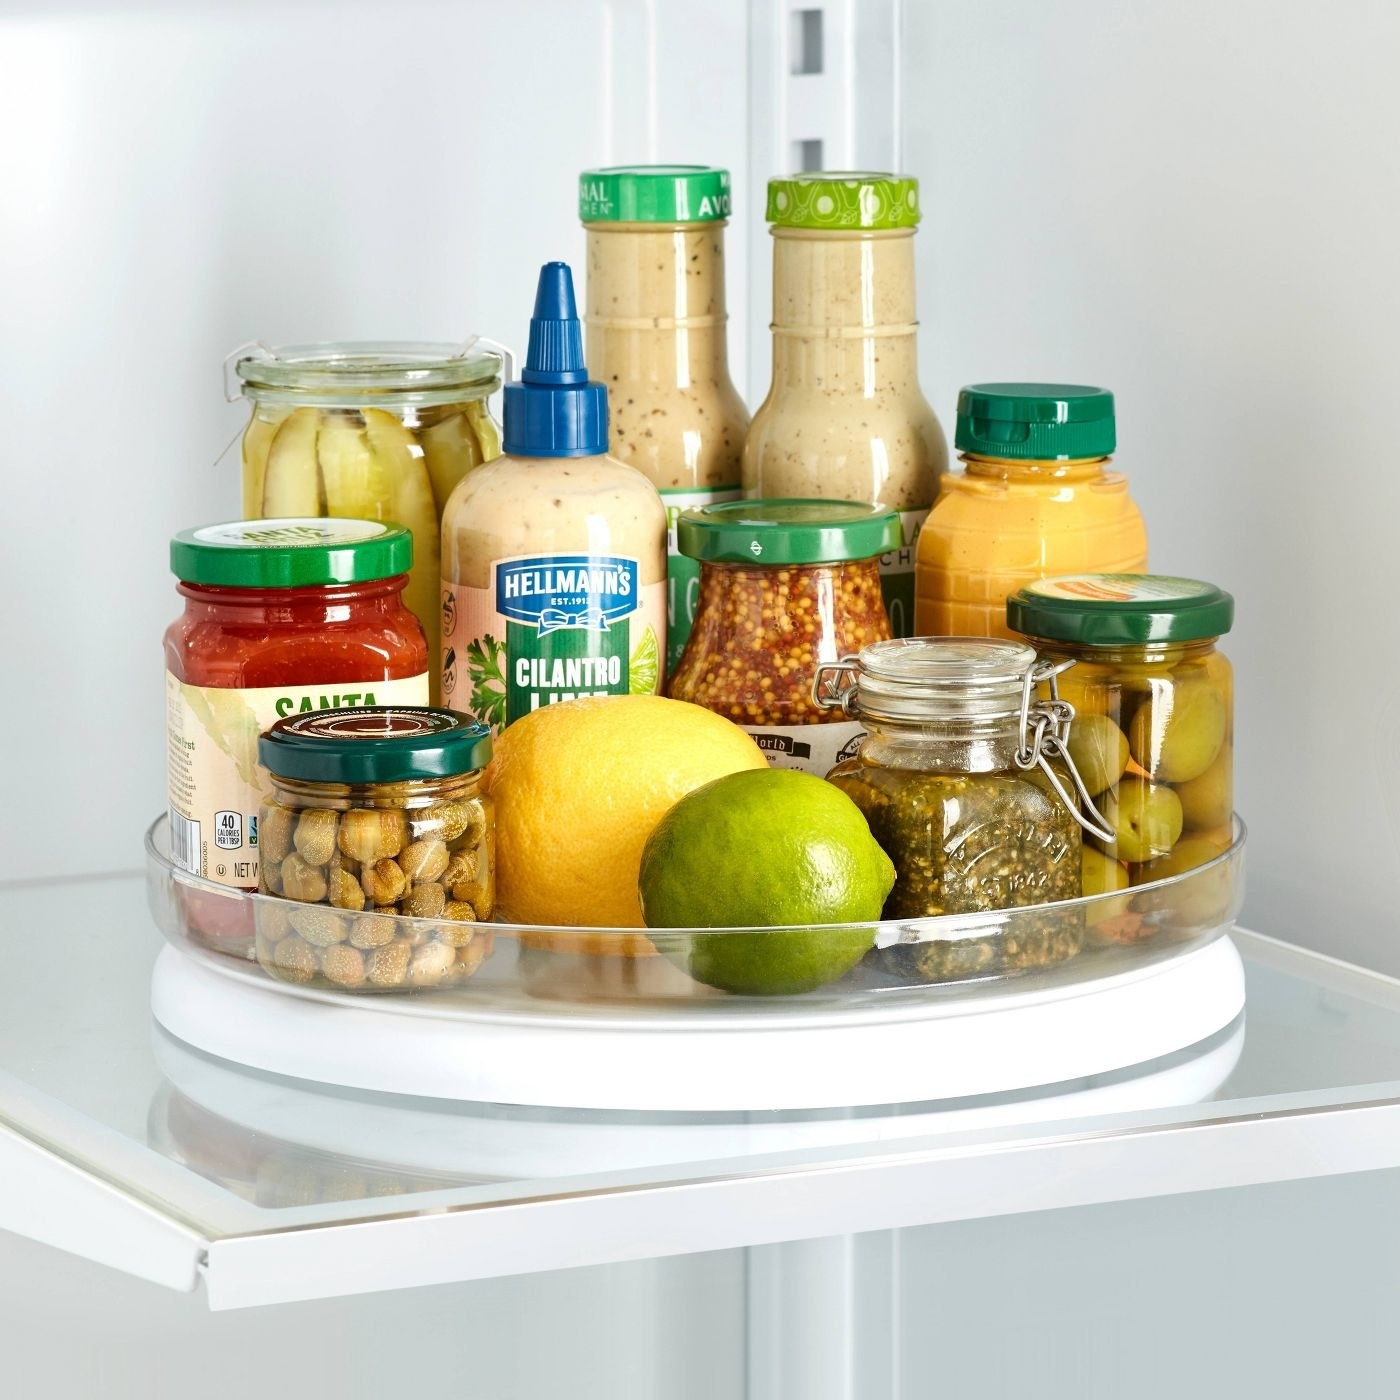 White and clear turntable with jars of olives, fresh lemons, and dressing inside a fridge